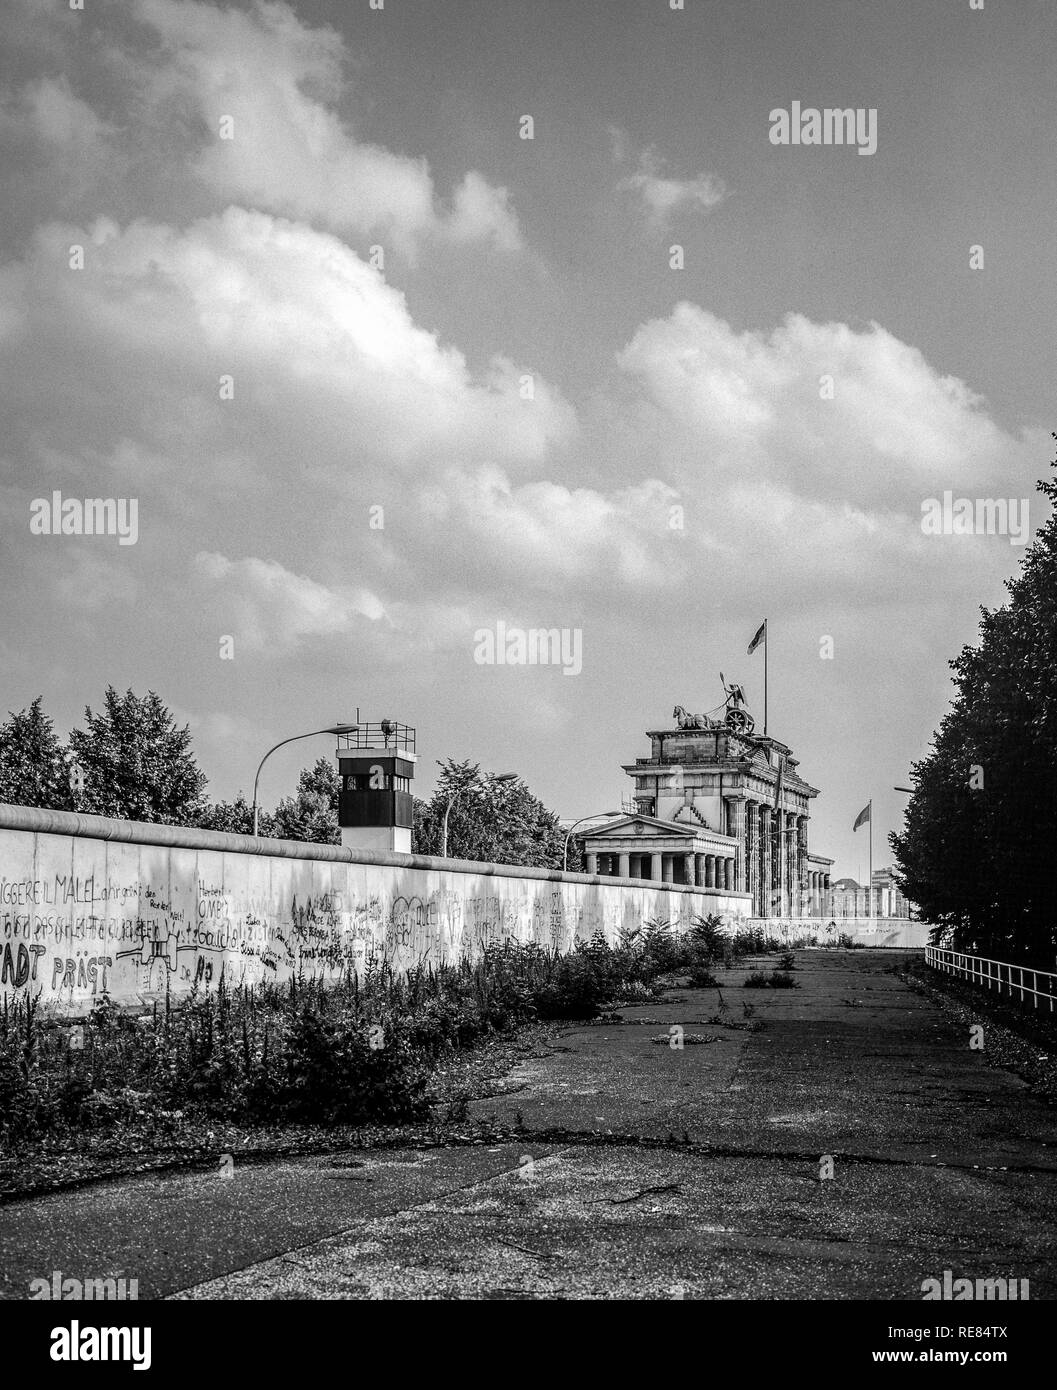 August 1986, Berlin Wall and East-Berlin watchtower beside Brandenburg Gate, West Berlin side, Germany, Europe, - Stock Image